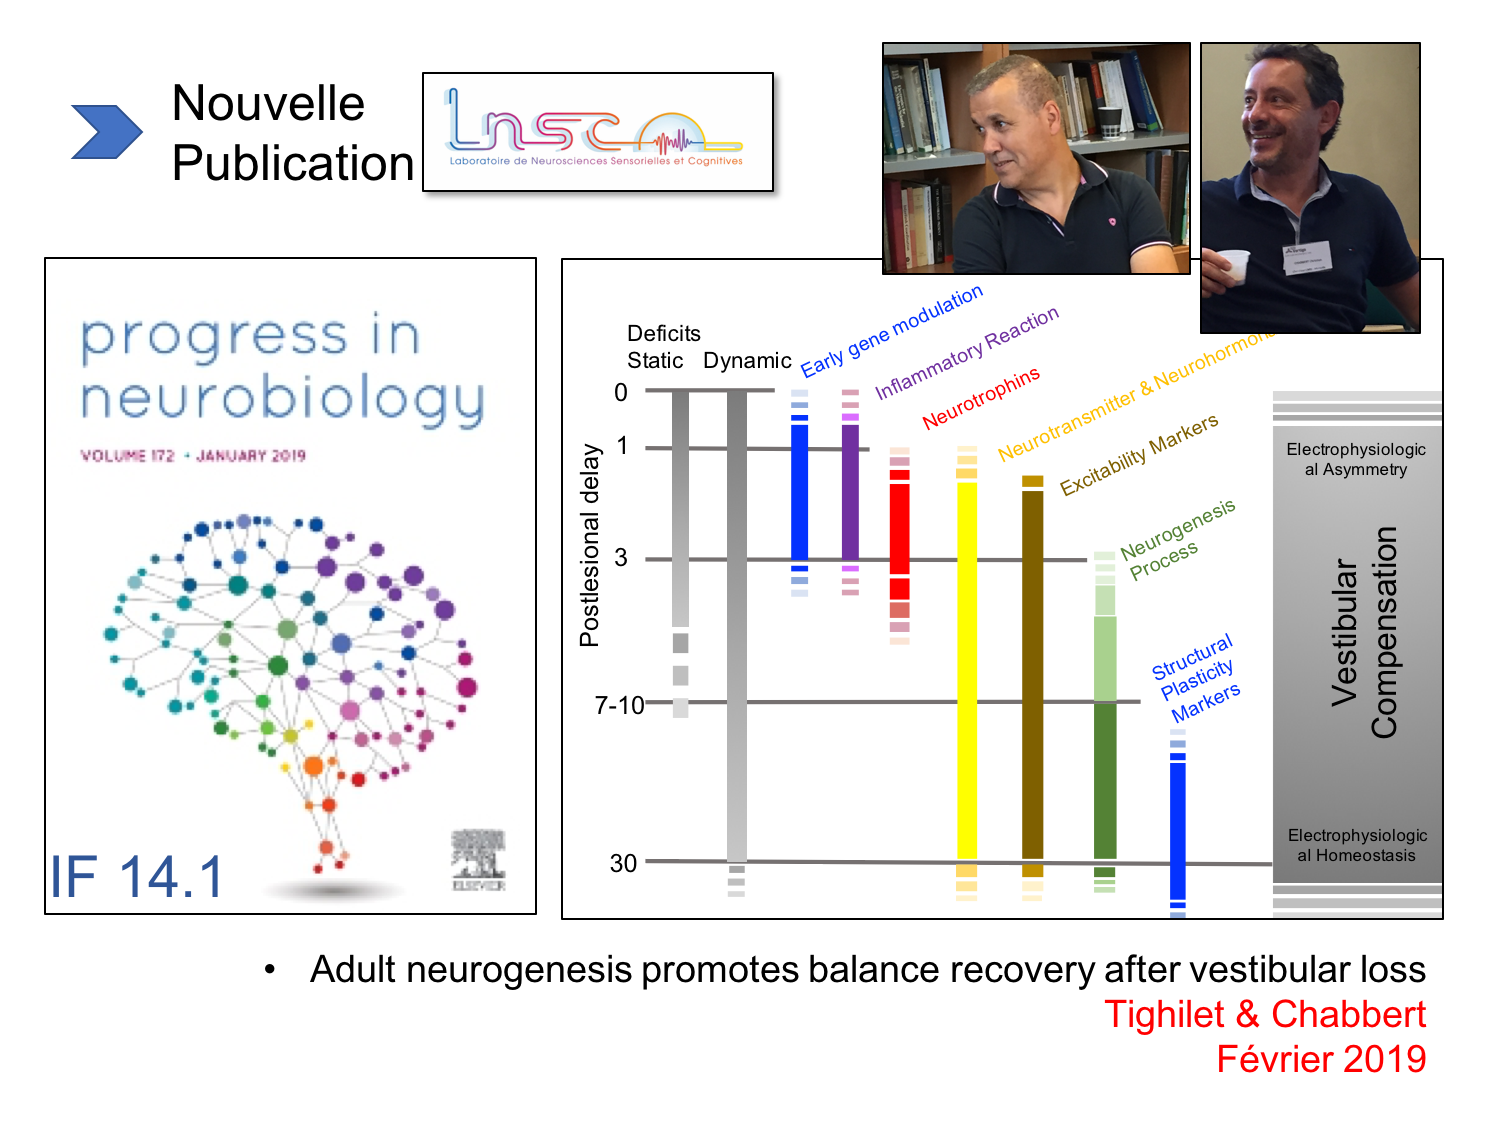 LNSC - publication de fort facteur d'impact (14,1) dans Progress in Neurobiology